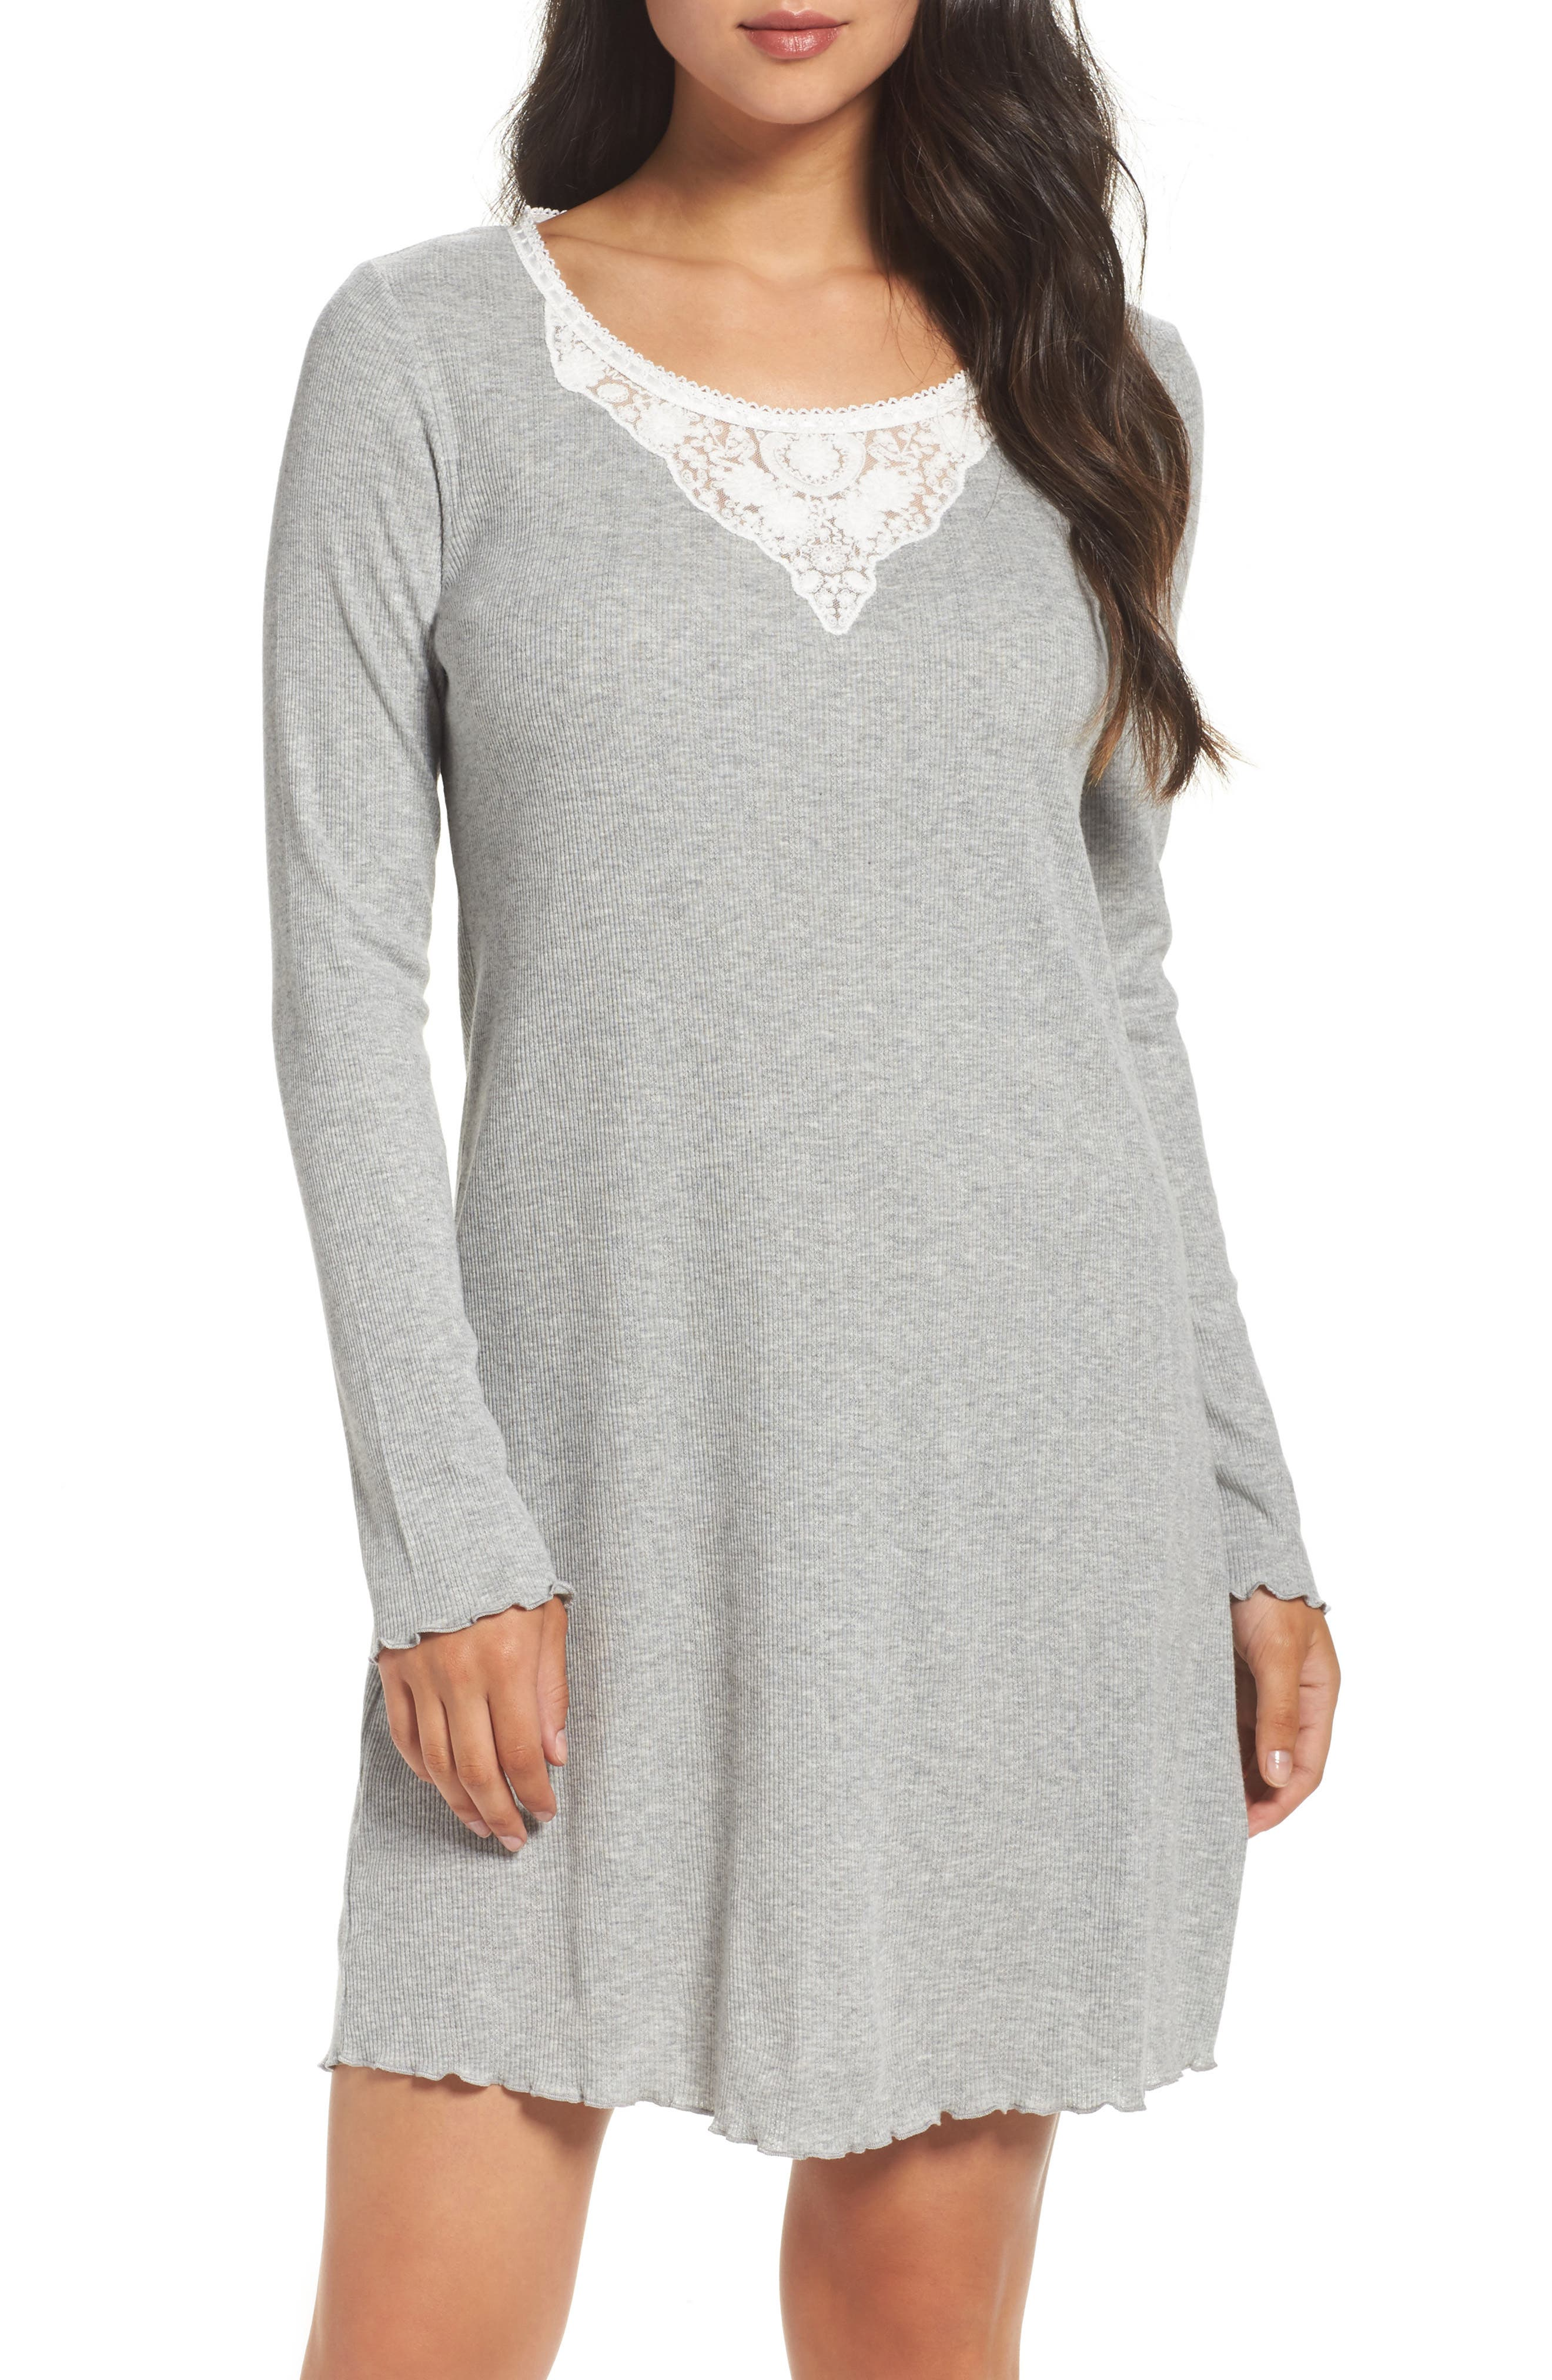 Lace Neck Sleep Shirt,                             Main thumbnail 1, color,                             Grey Heather